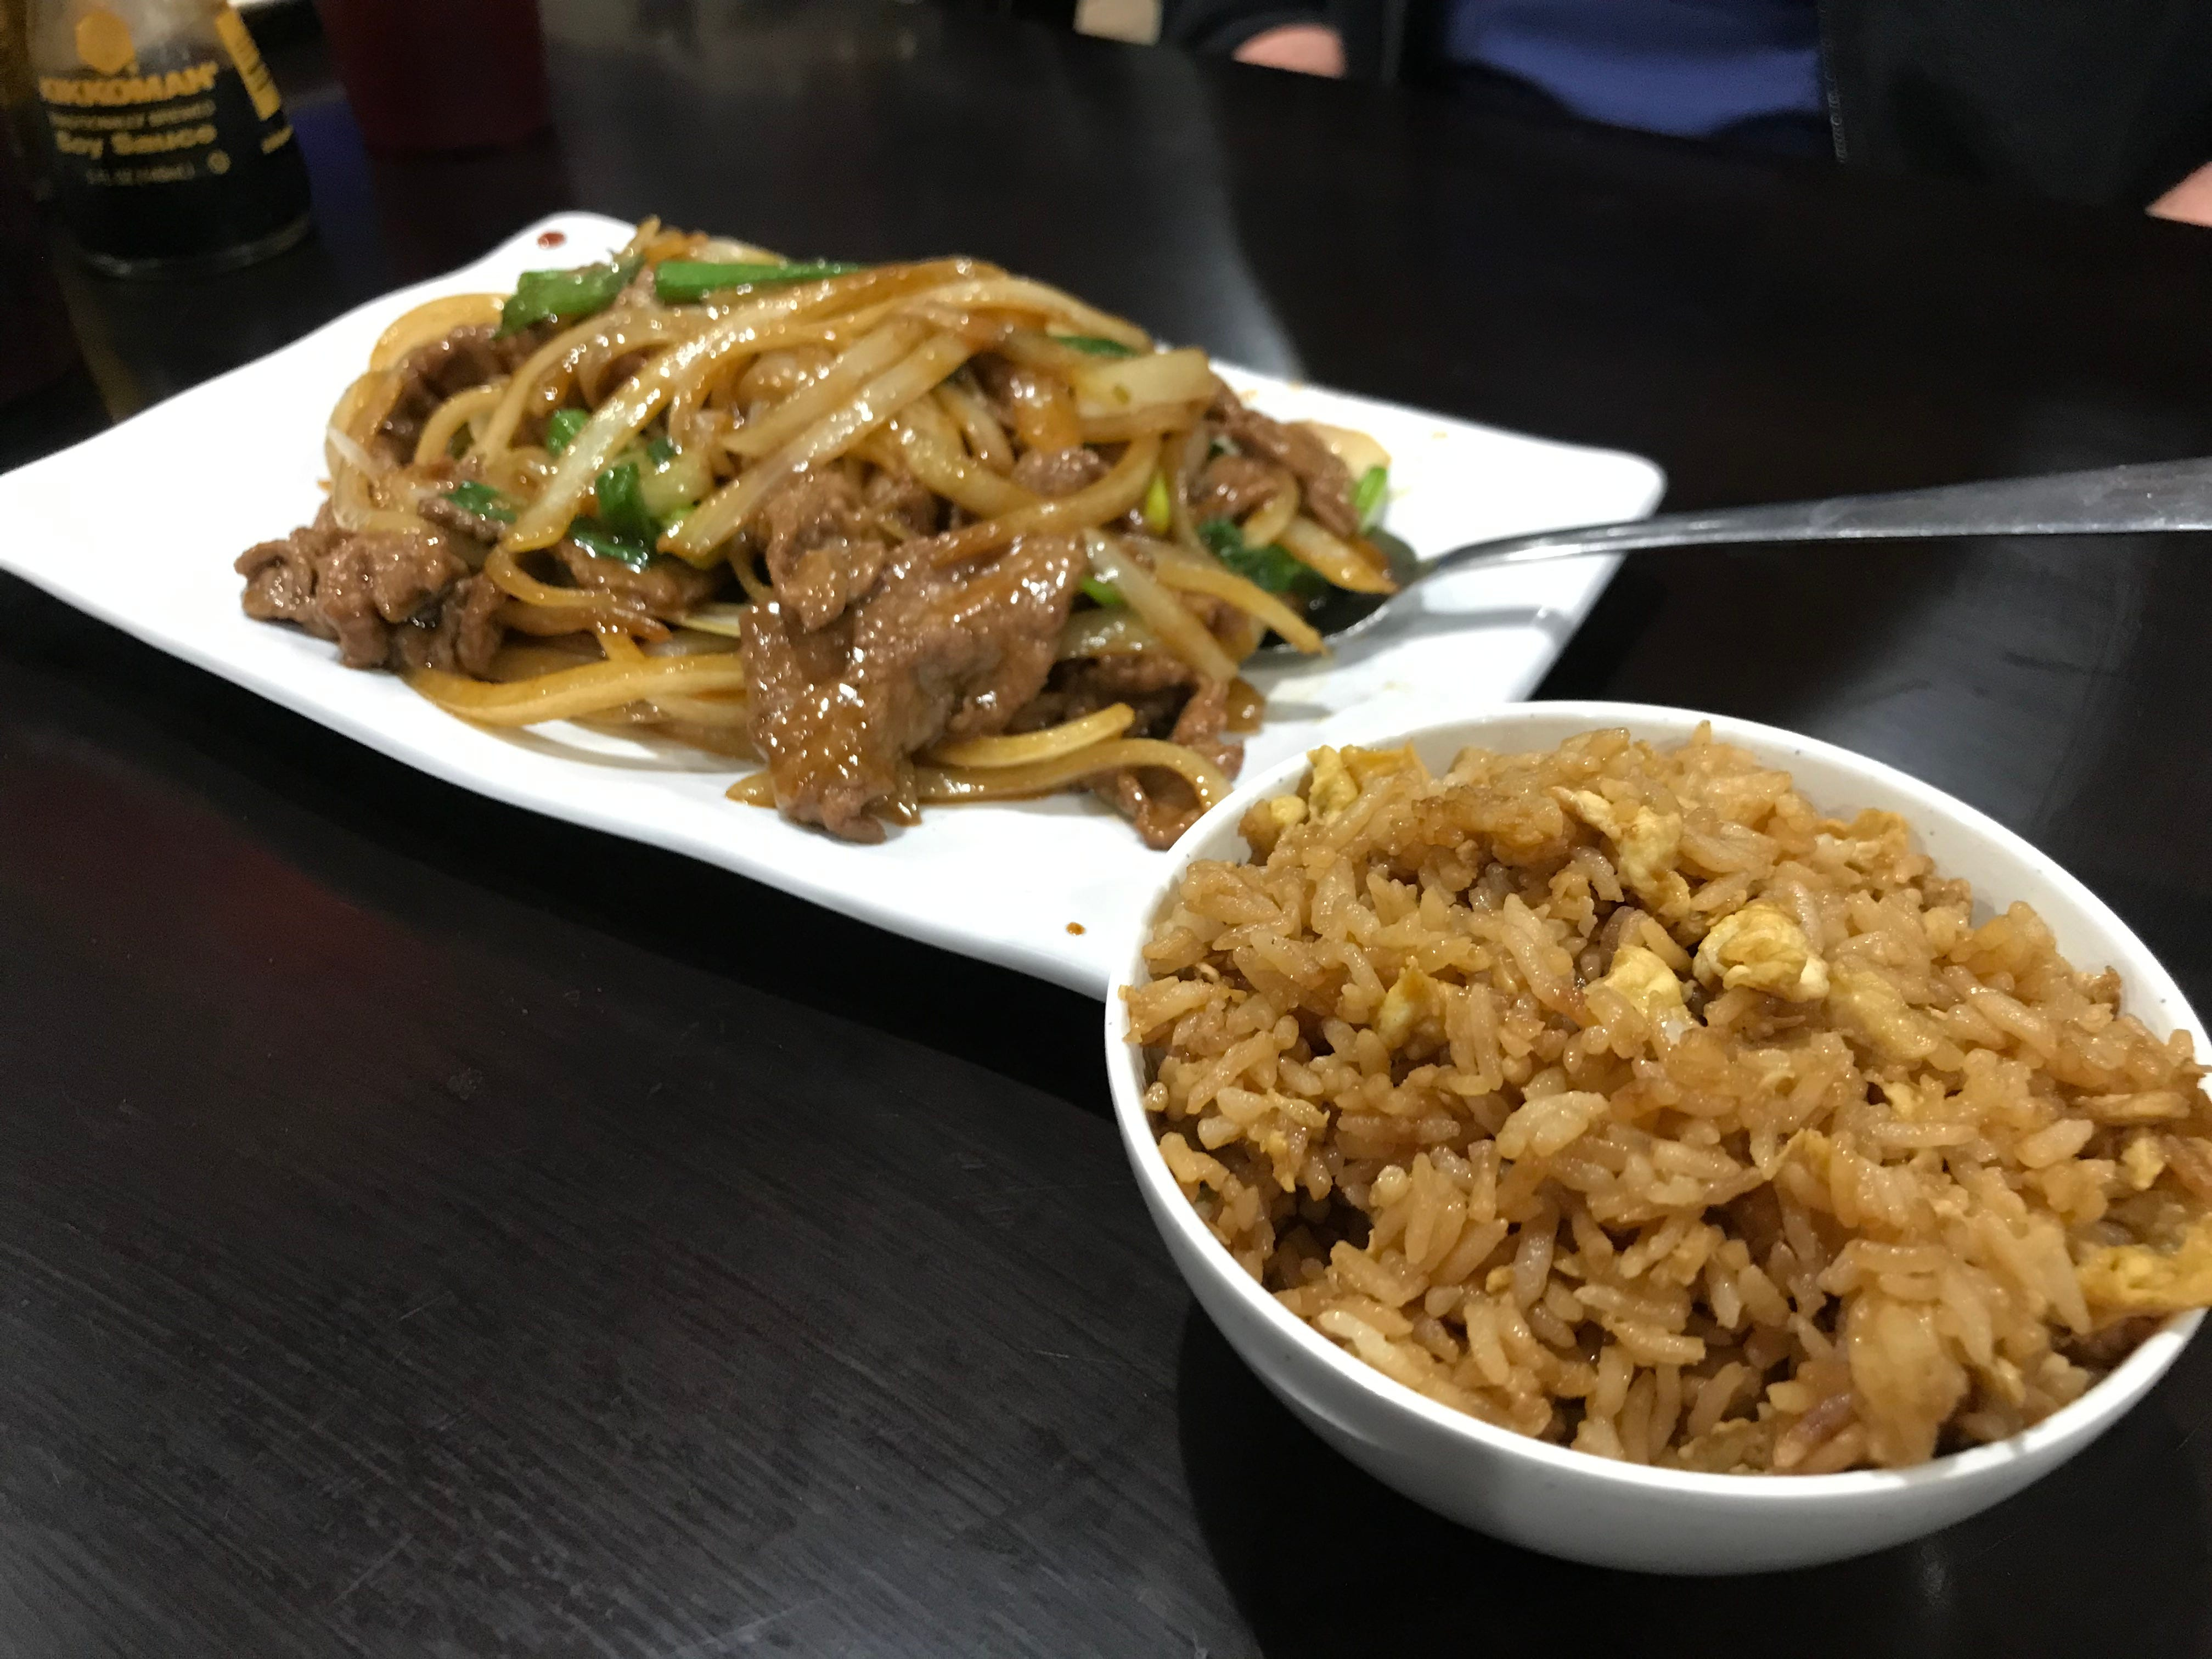 The beef and scallions were tasty, but they did not resemble the menu's photograph, which looked much more appetizing.